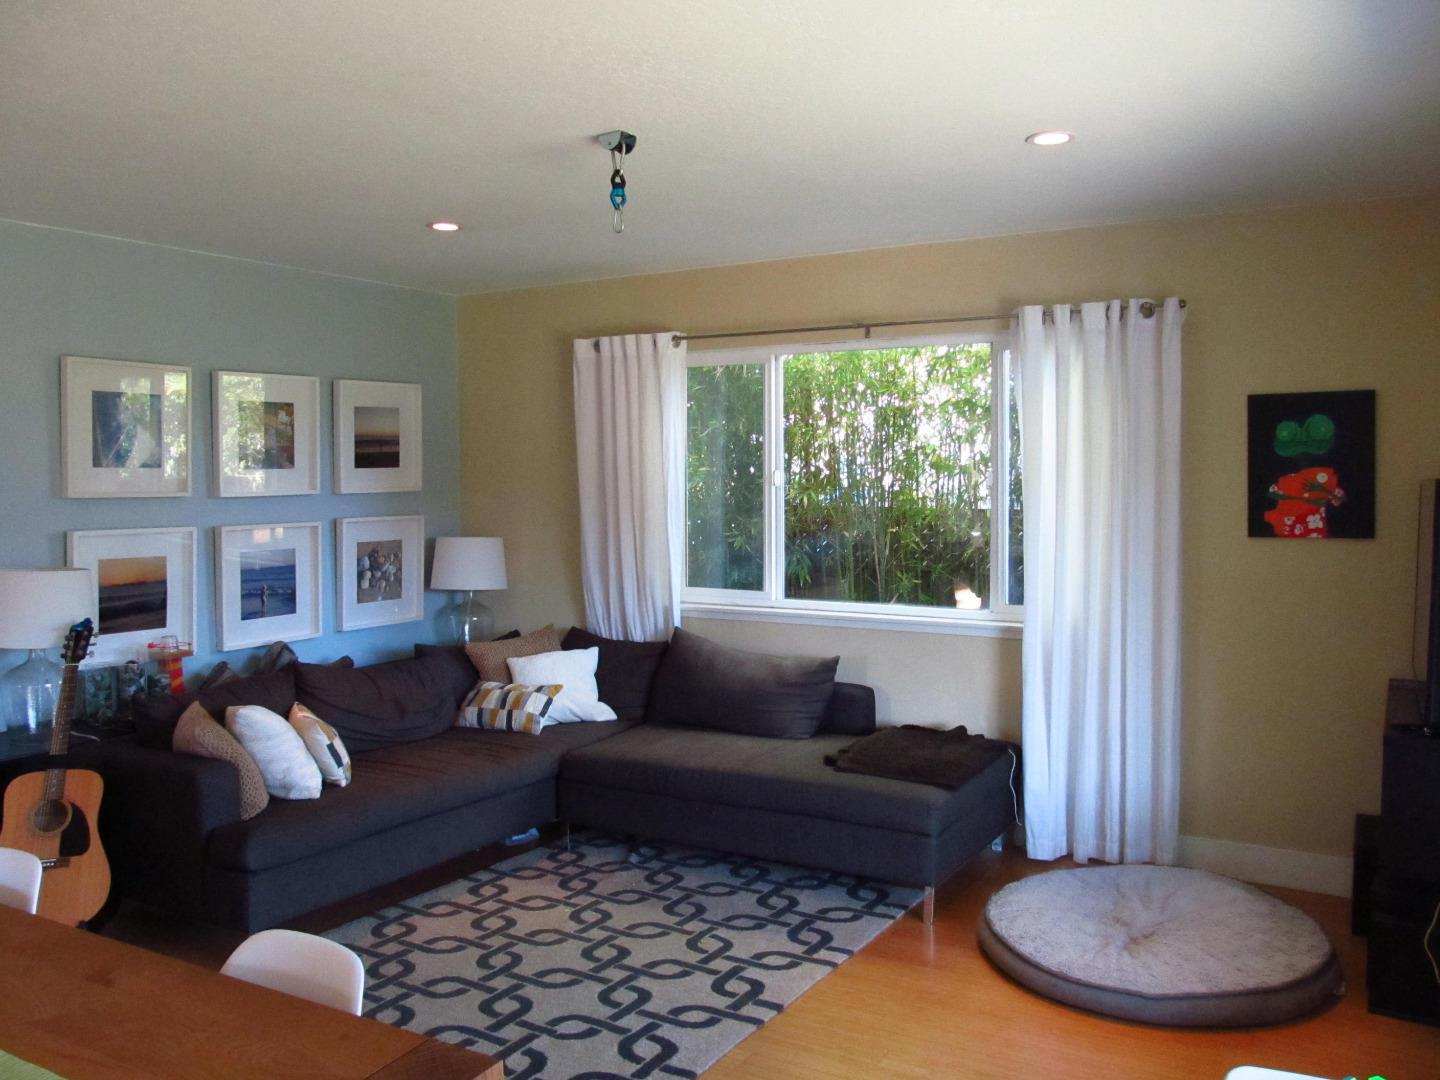 Additional photo for property listing at 614 Cedar Street  Aptos, カリフォルニア 95003 アメリカ合衆国